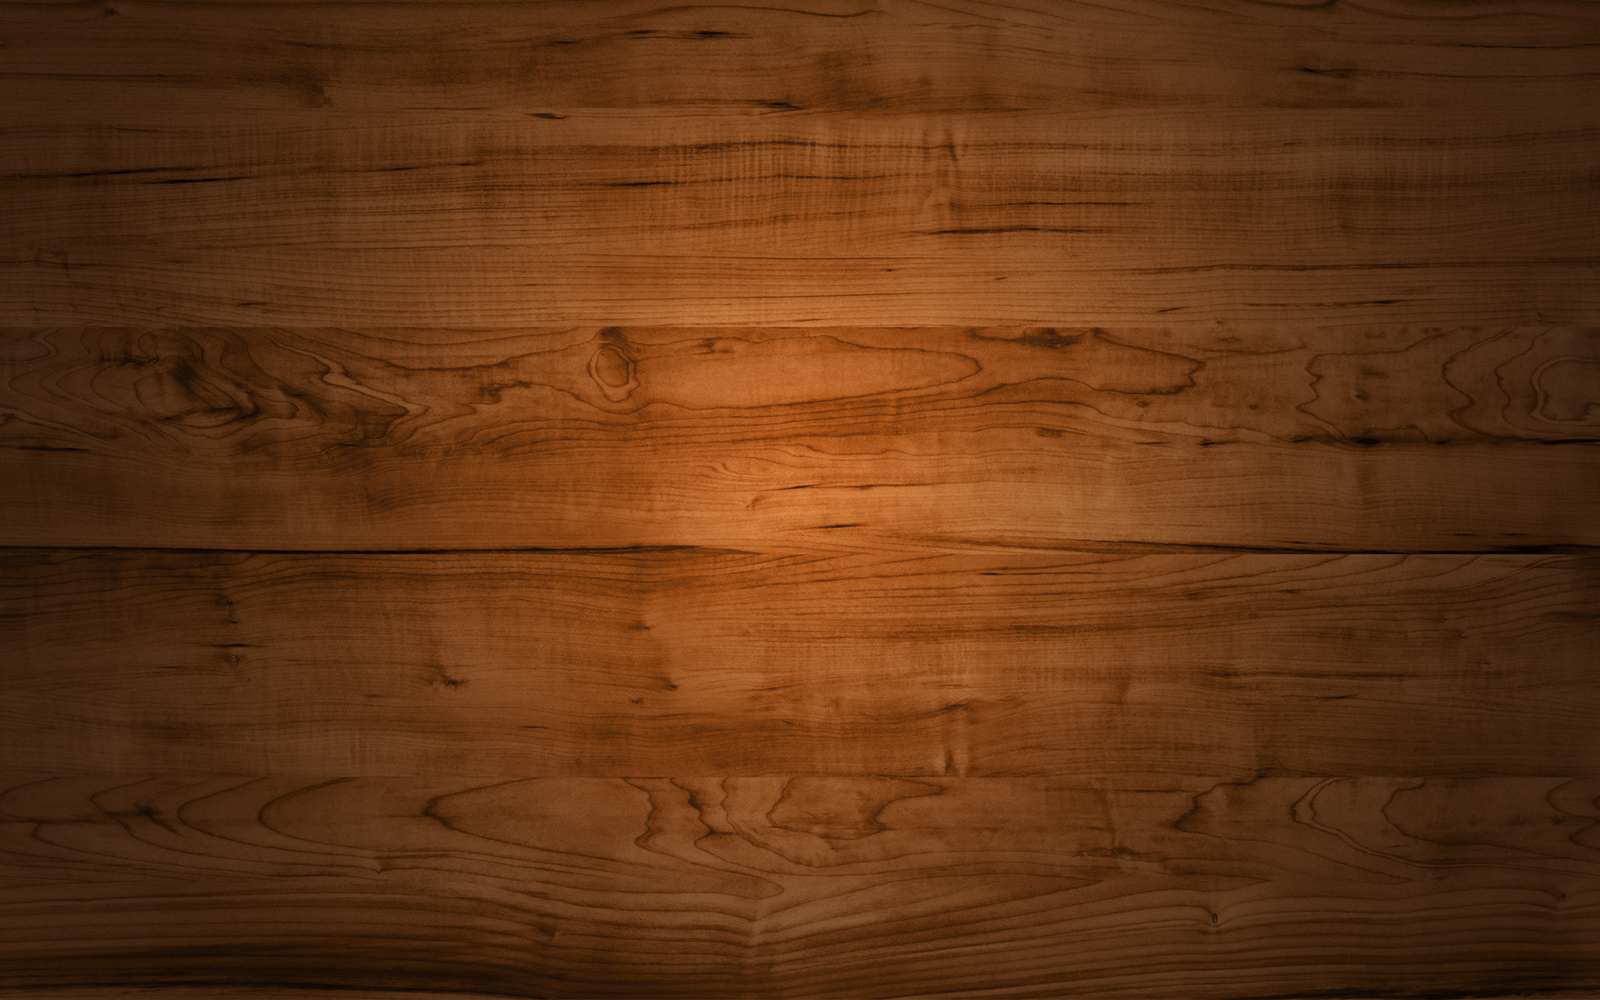 Andro Heeney Wood Brown Background HD Wallpaper 08052014 1600x1000